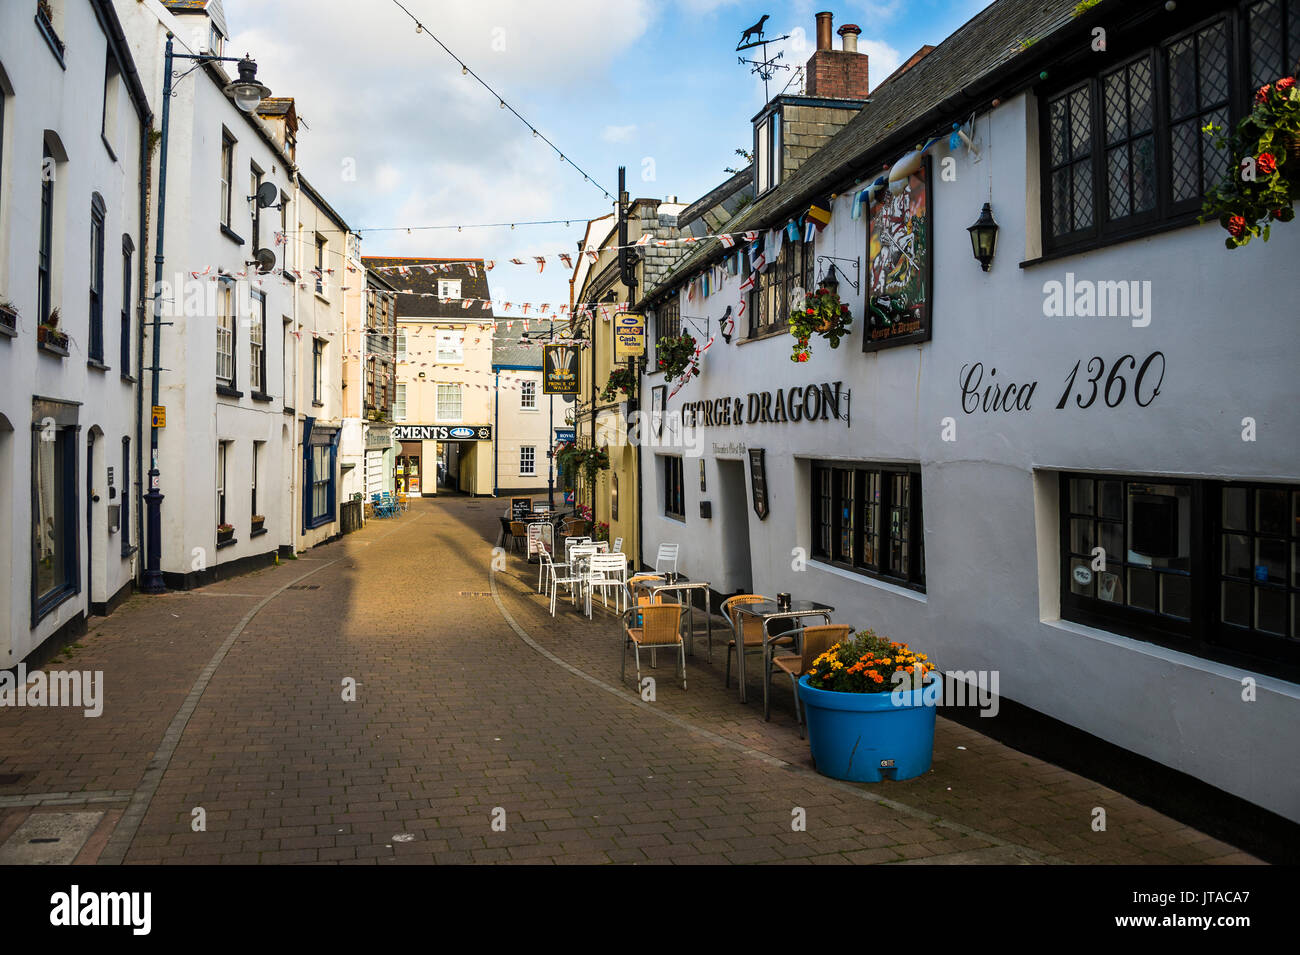 Port pittoresque ville d'Ifracombe, North Devon, Angleterre, Royaume-Uni, Europe Photo Stock